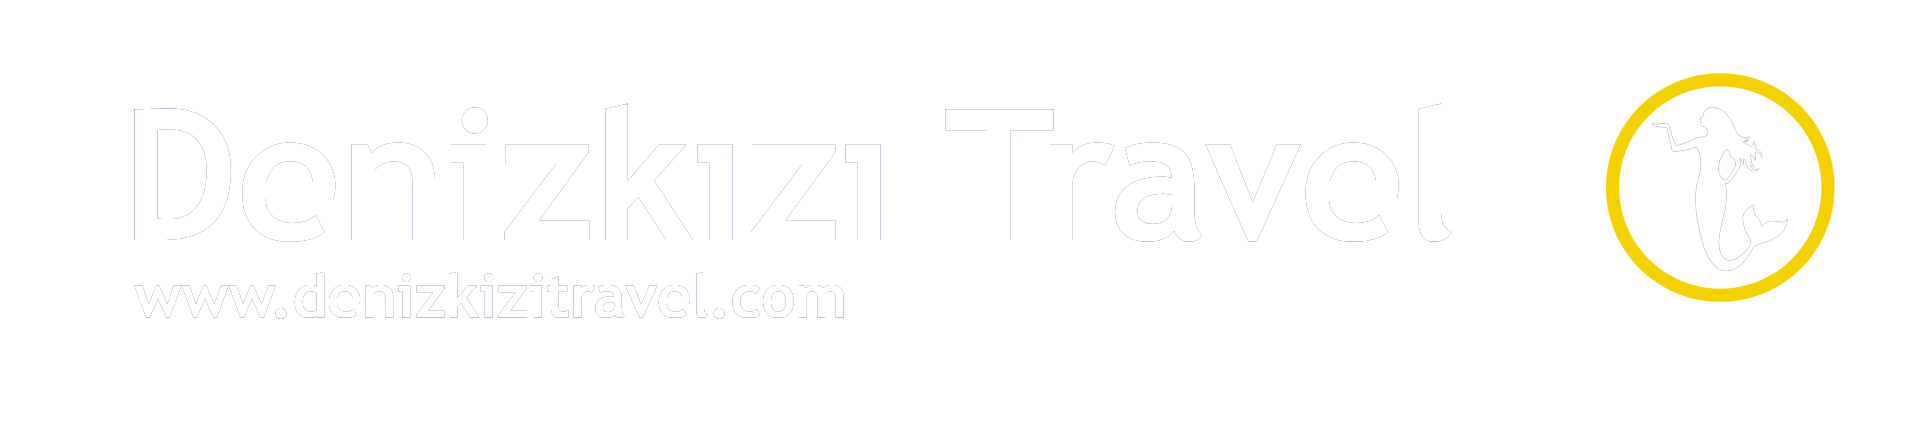 Denizkizi Travel Agency